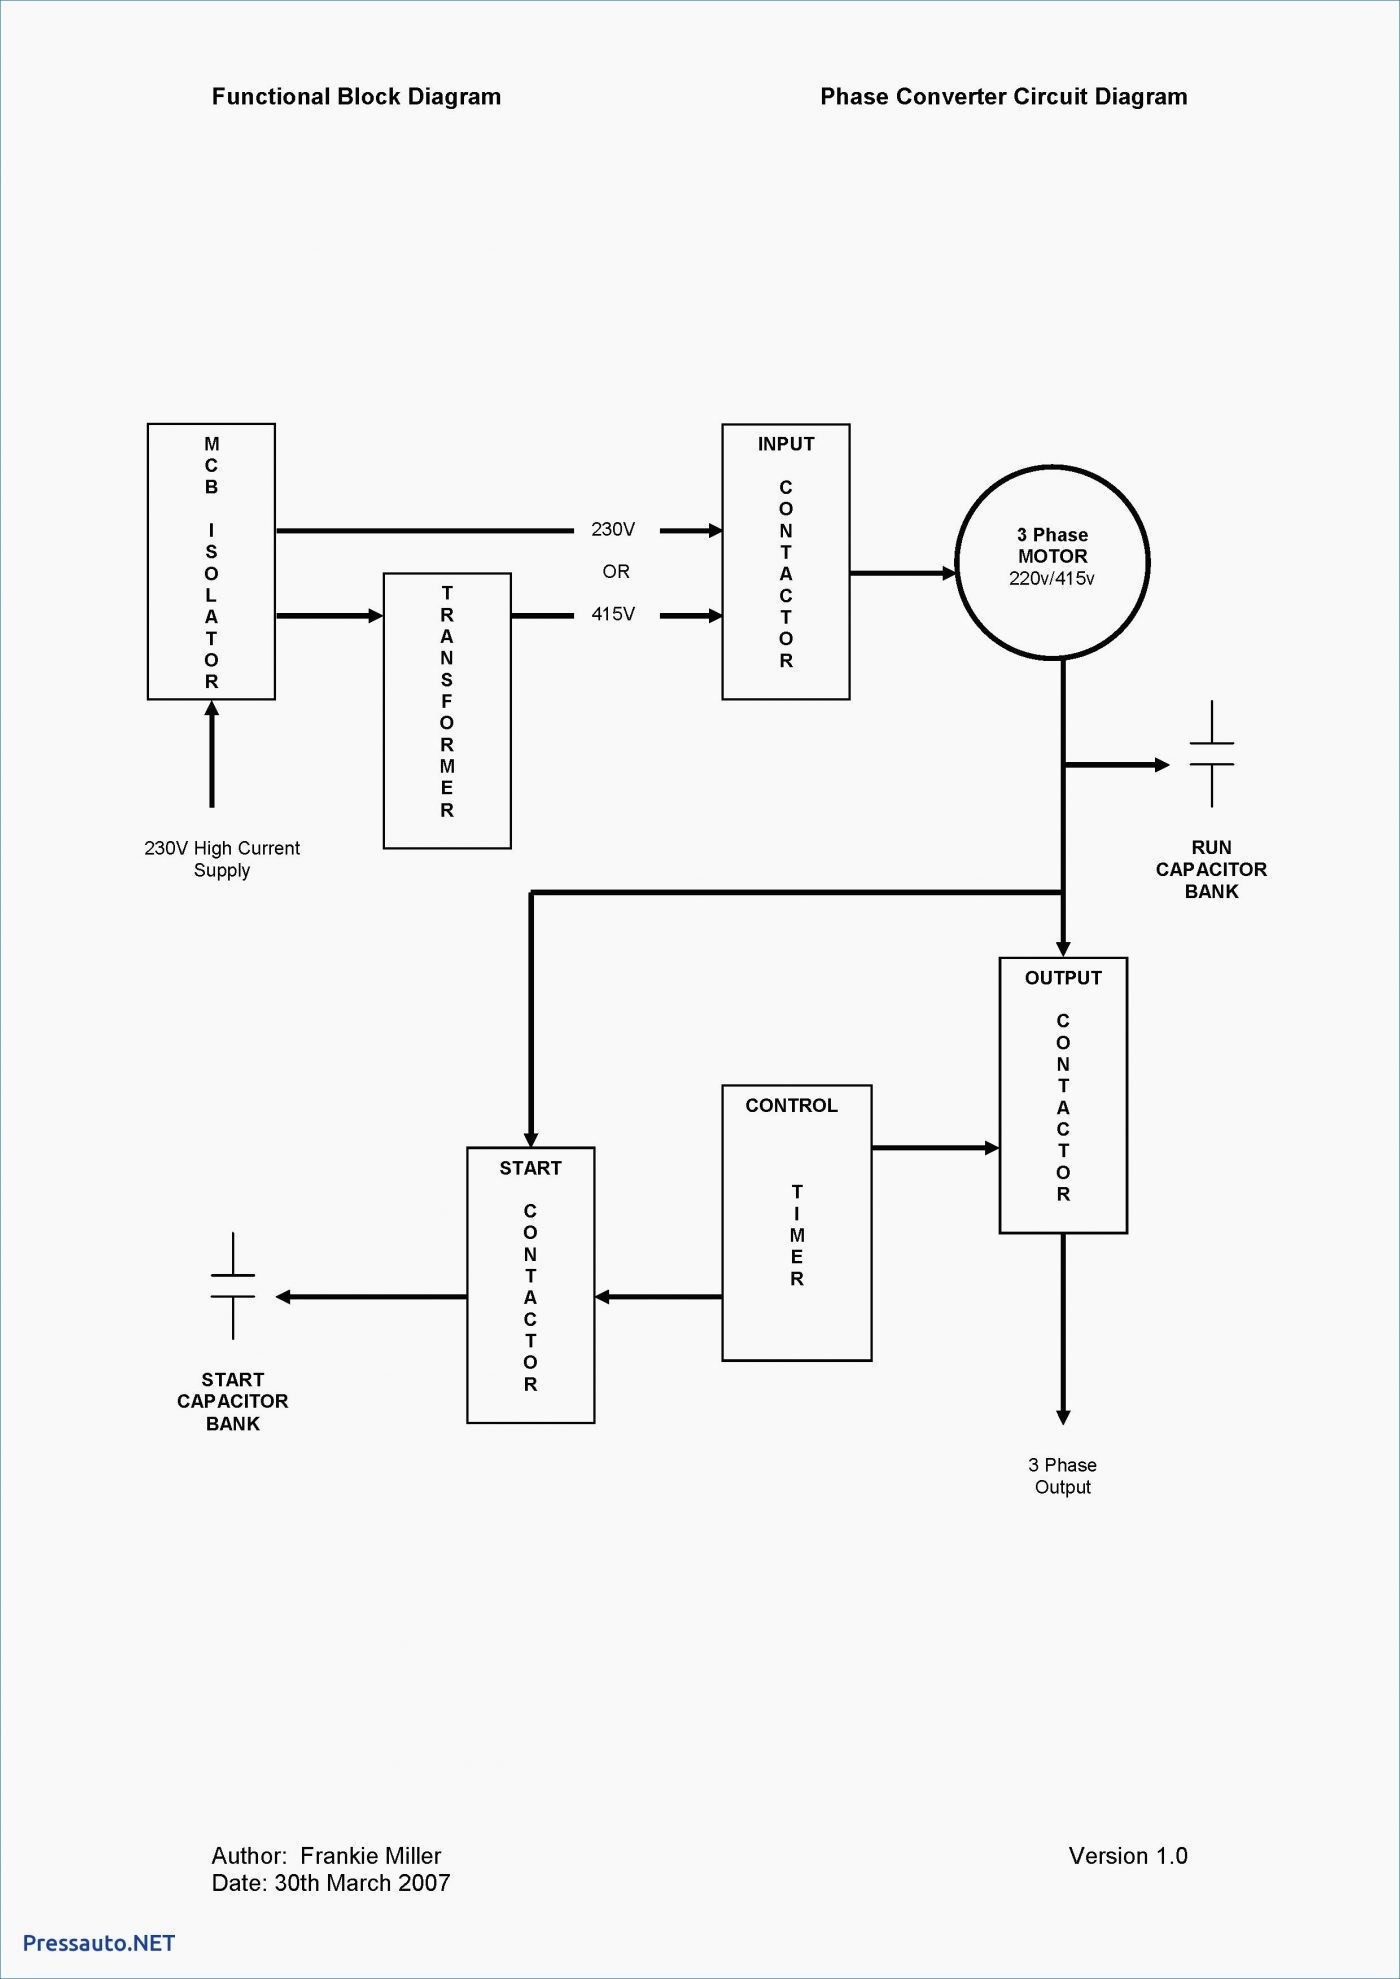 230V Single Phase Wiring Diagram | Wiring Diagram - Wiring Diagram For 230V Single Phase Motor